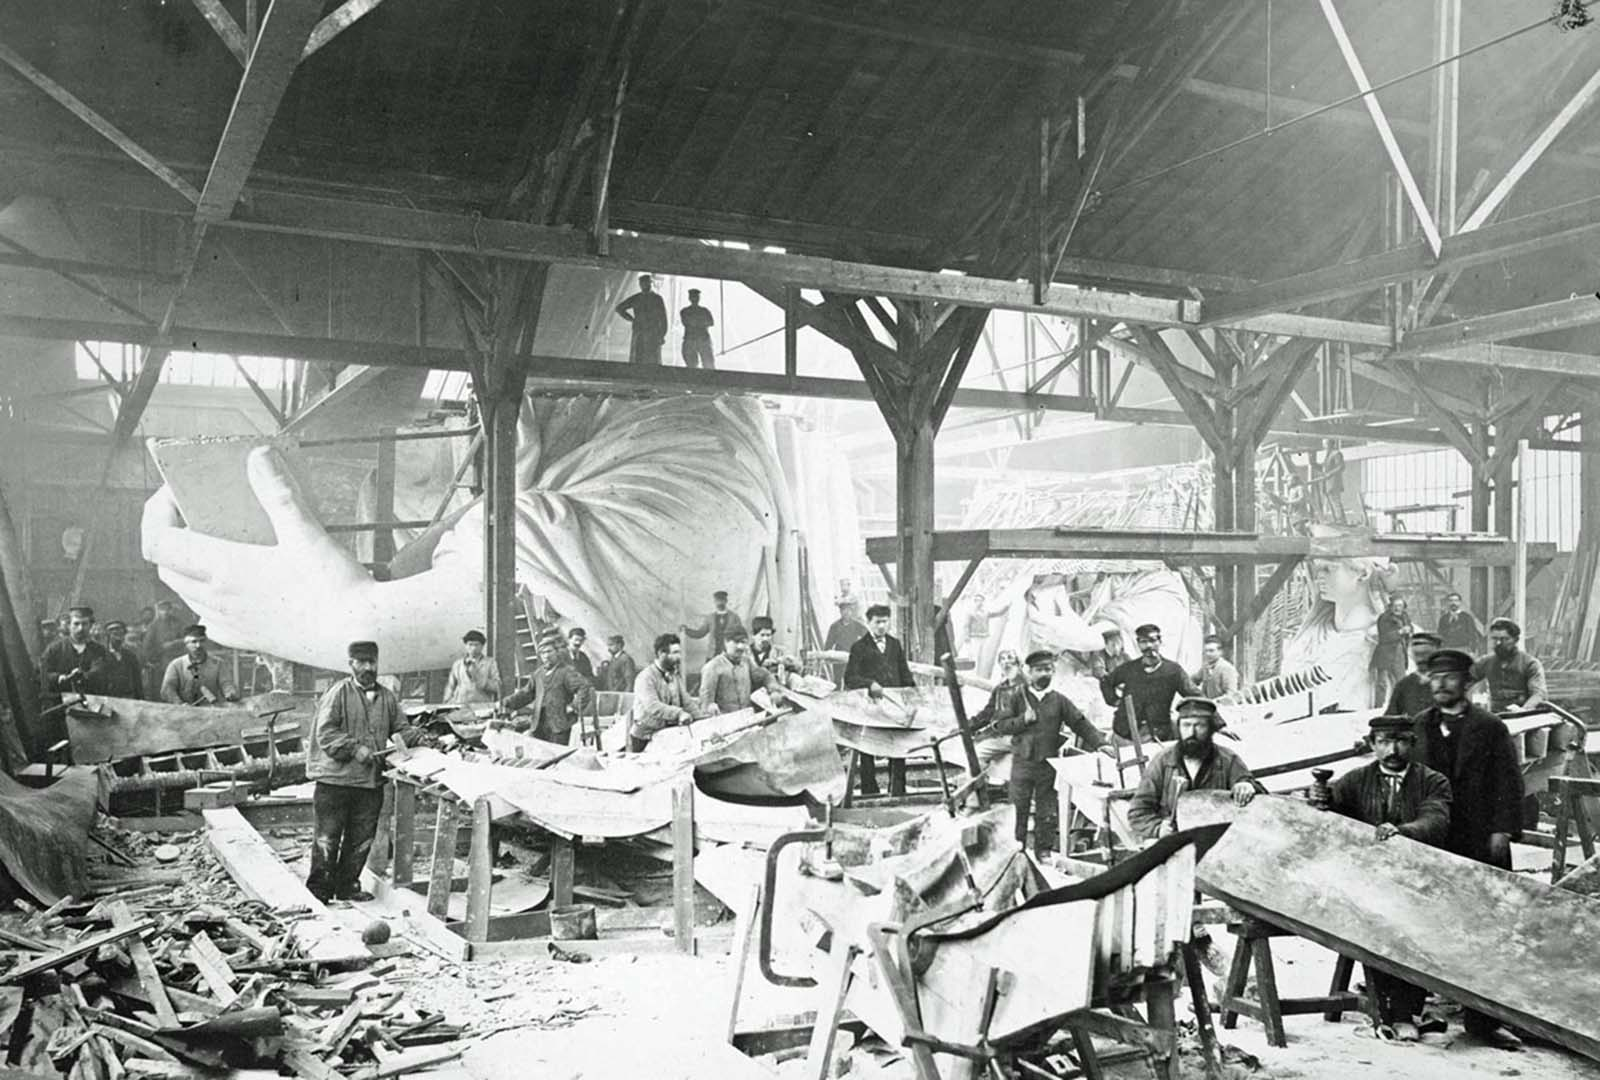 Men in a workshop hammer sheets of copper for the construction of the Statue of Liberty in 1883.